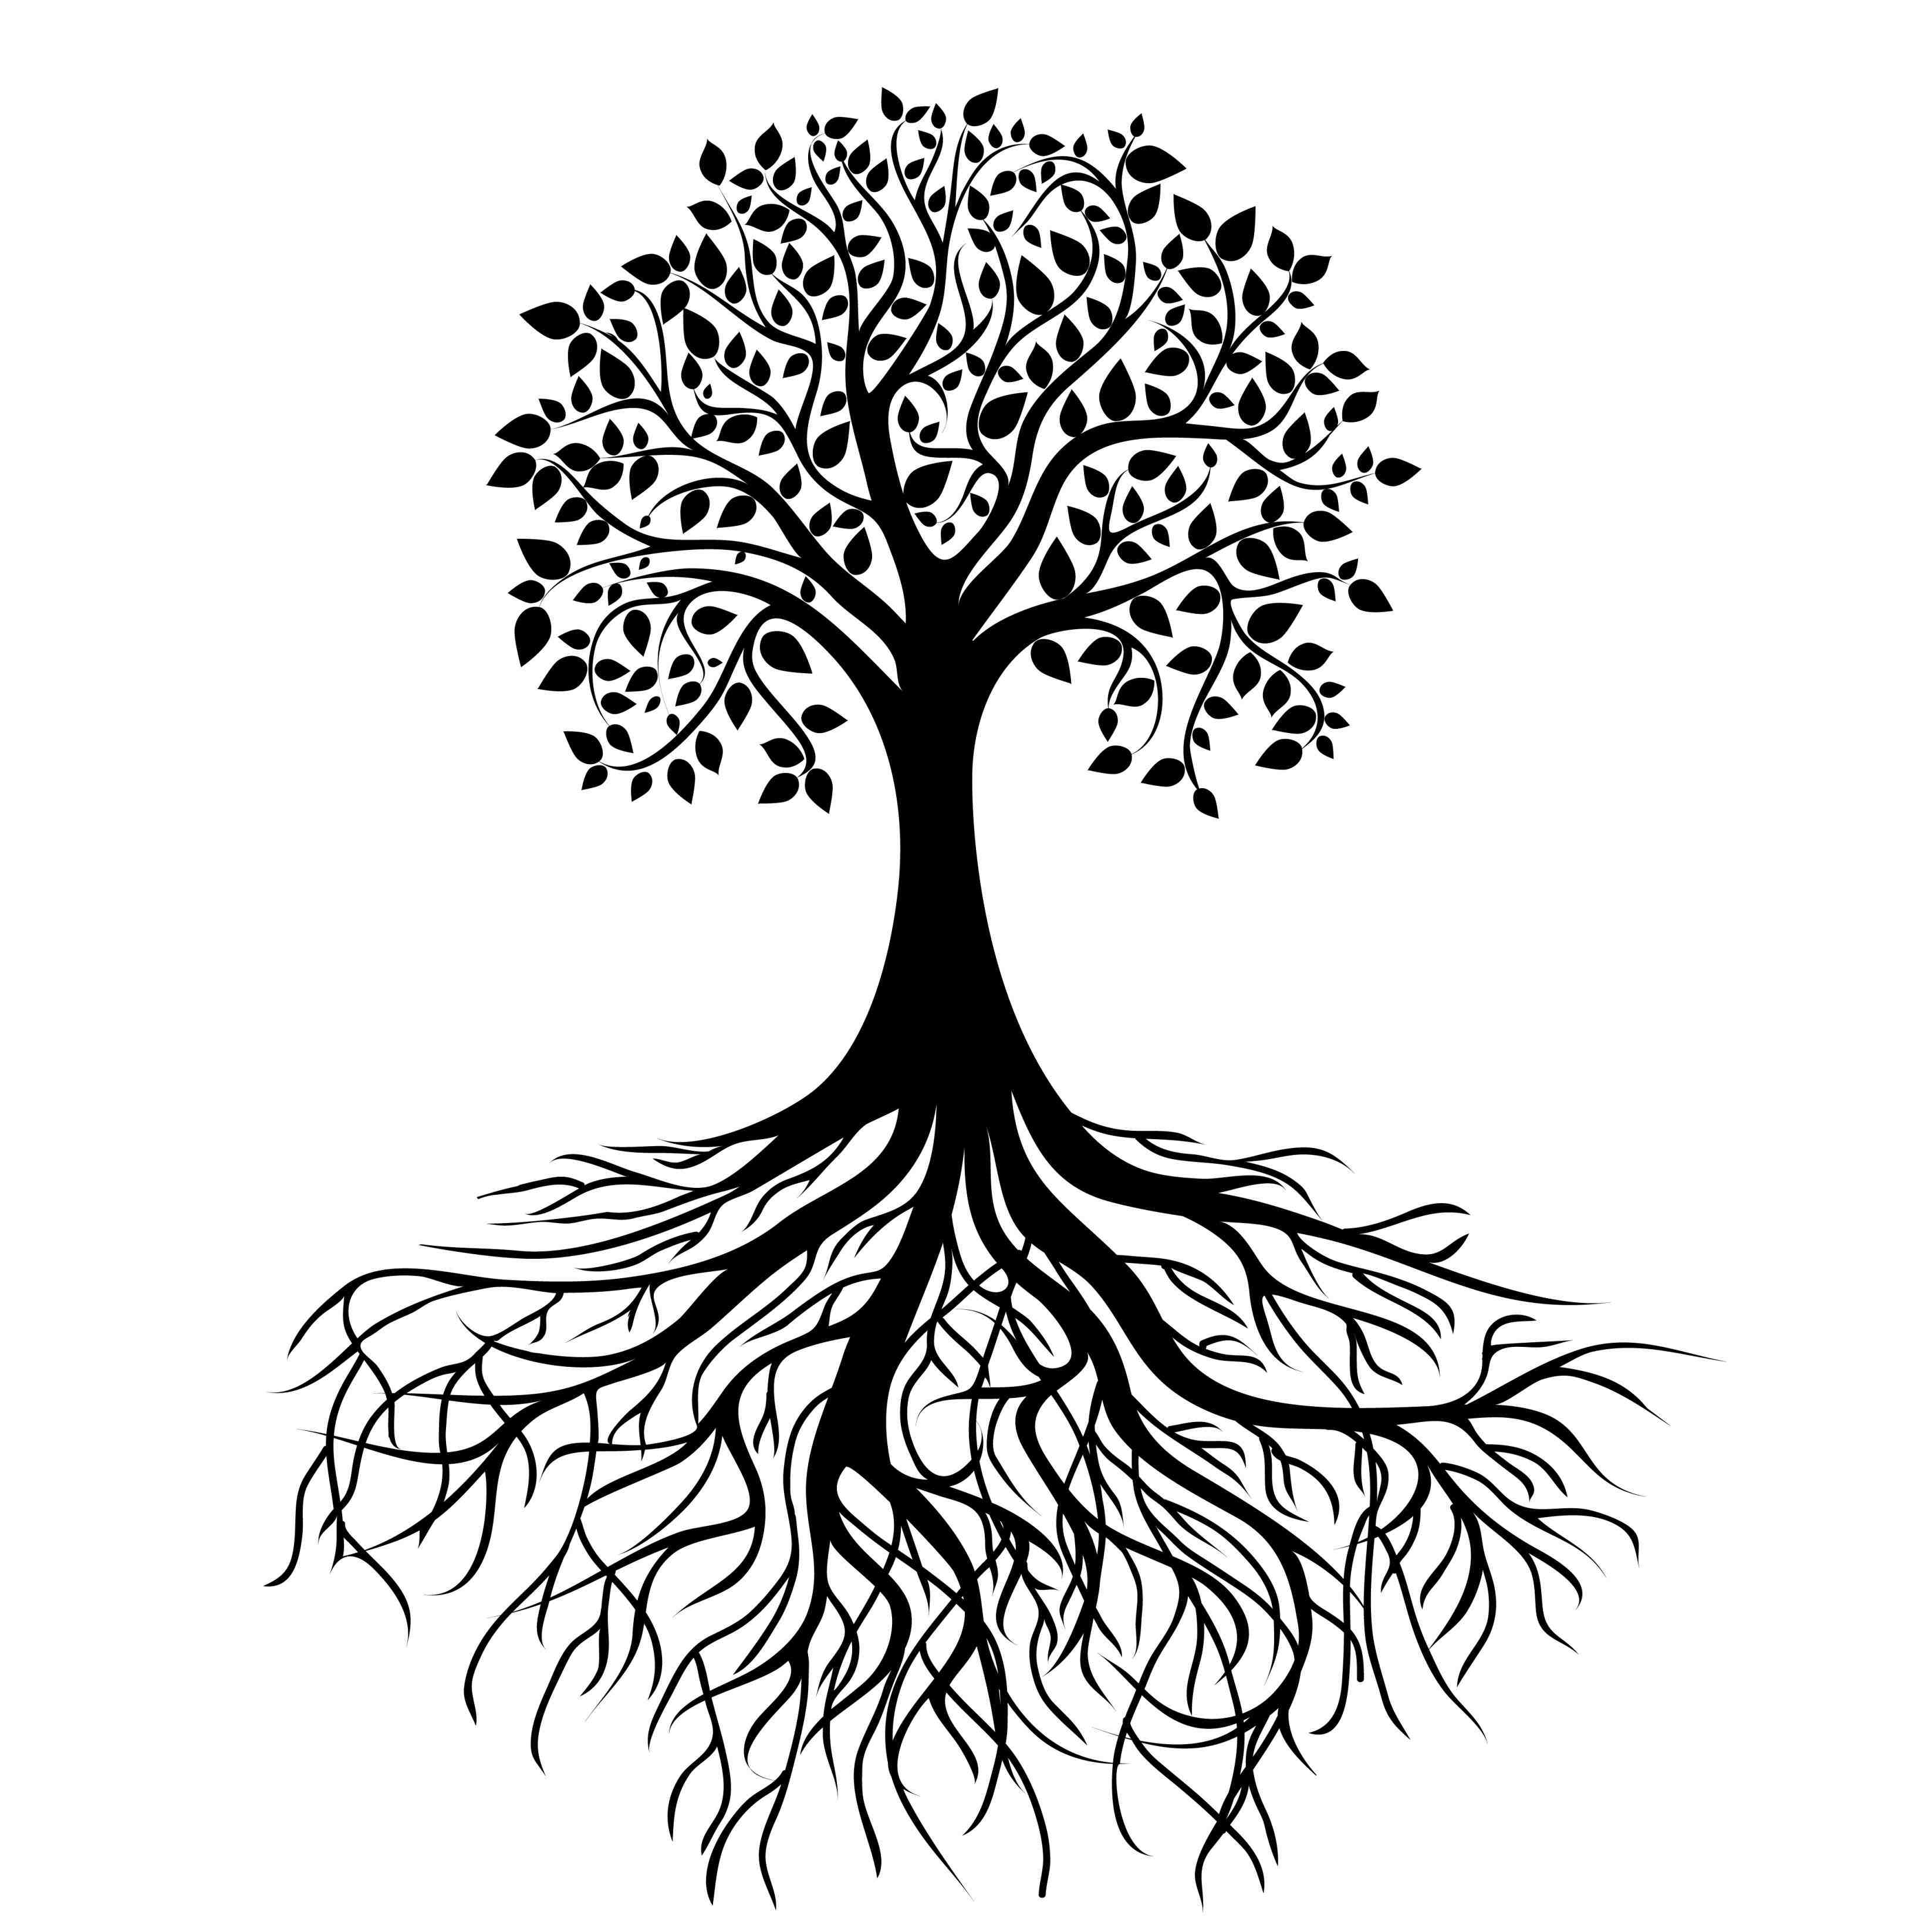 Tree Of Life Clip Art Black And White Giant tree of life cli...